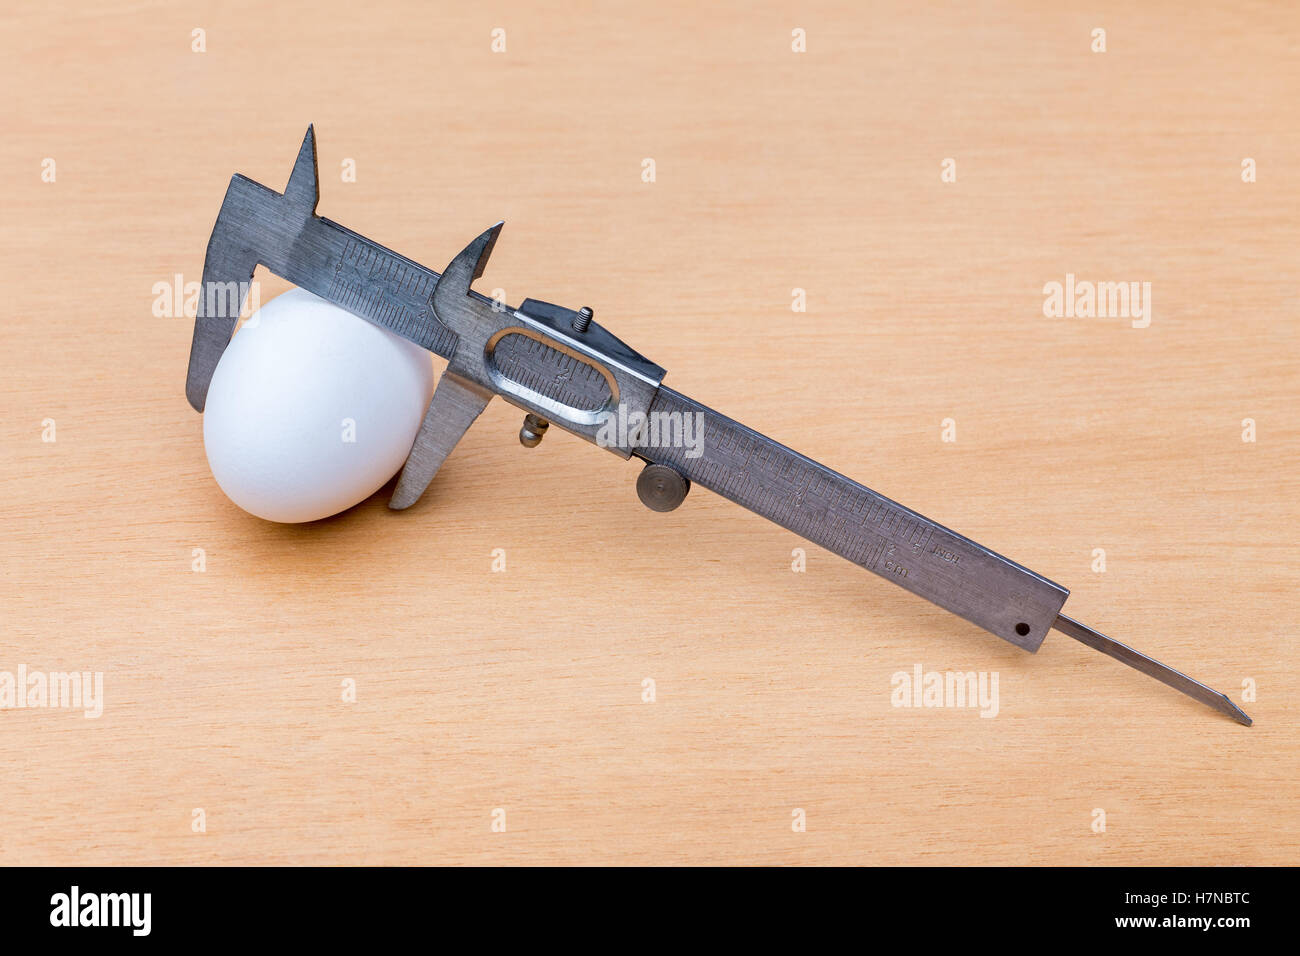 Vernier caliper measuring white chicken egg on wood - Stock Image